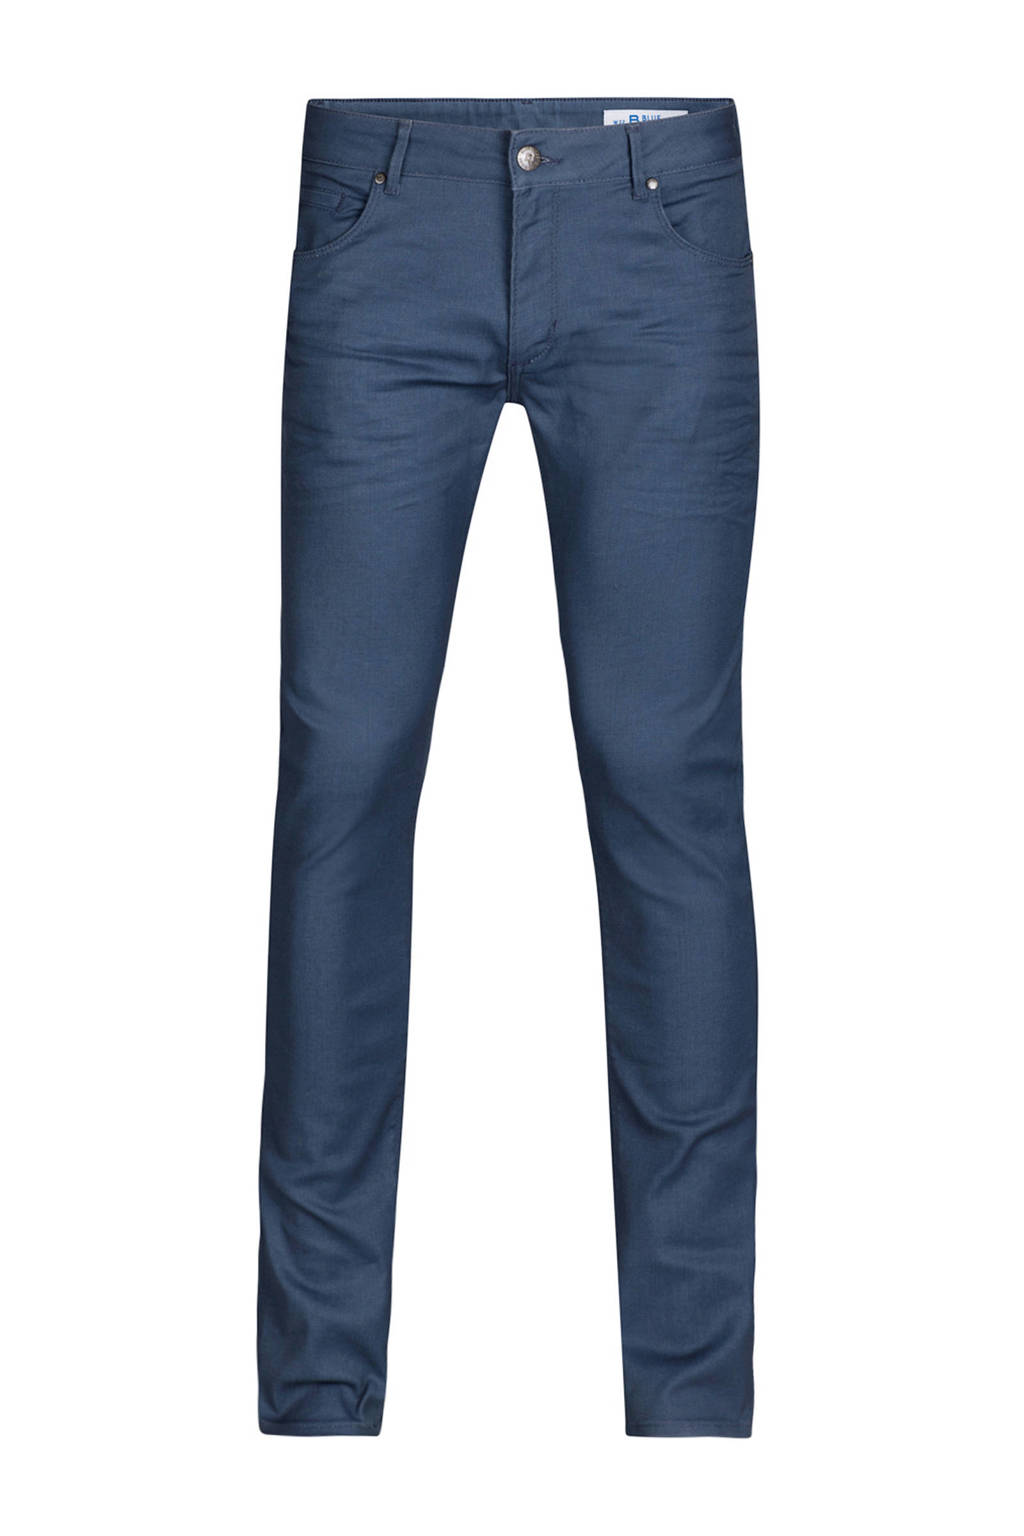 WE Fashion Blue Ridge tapered fit jeans, Blauw